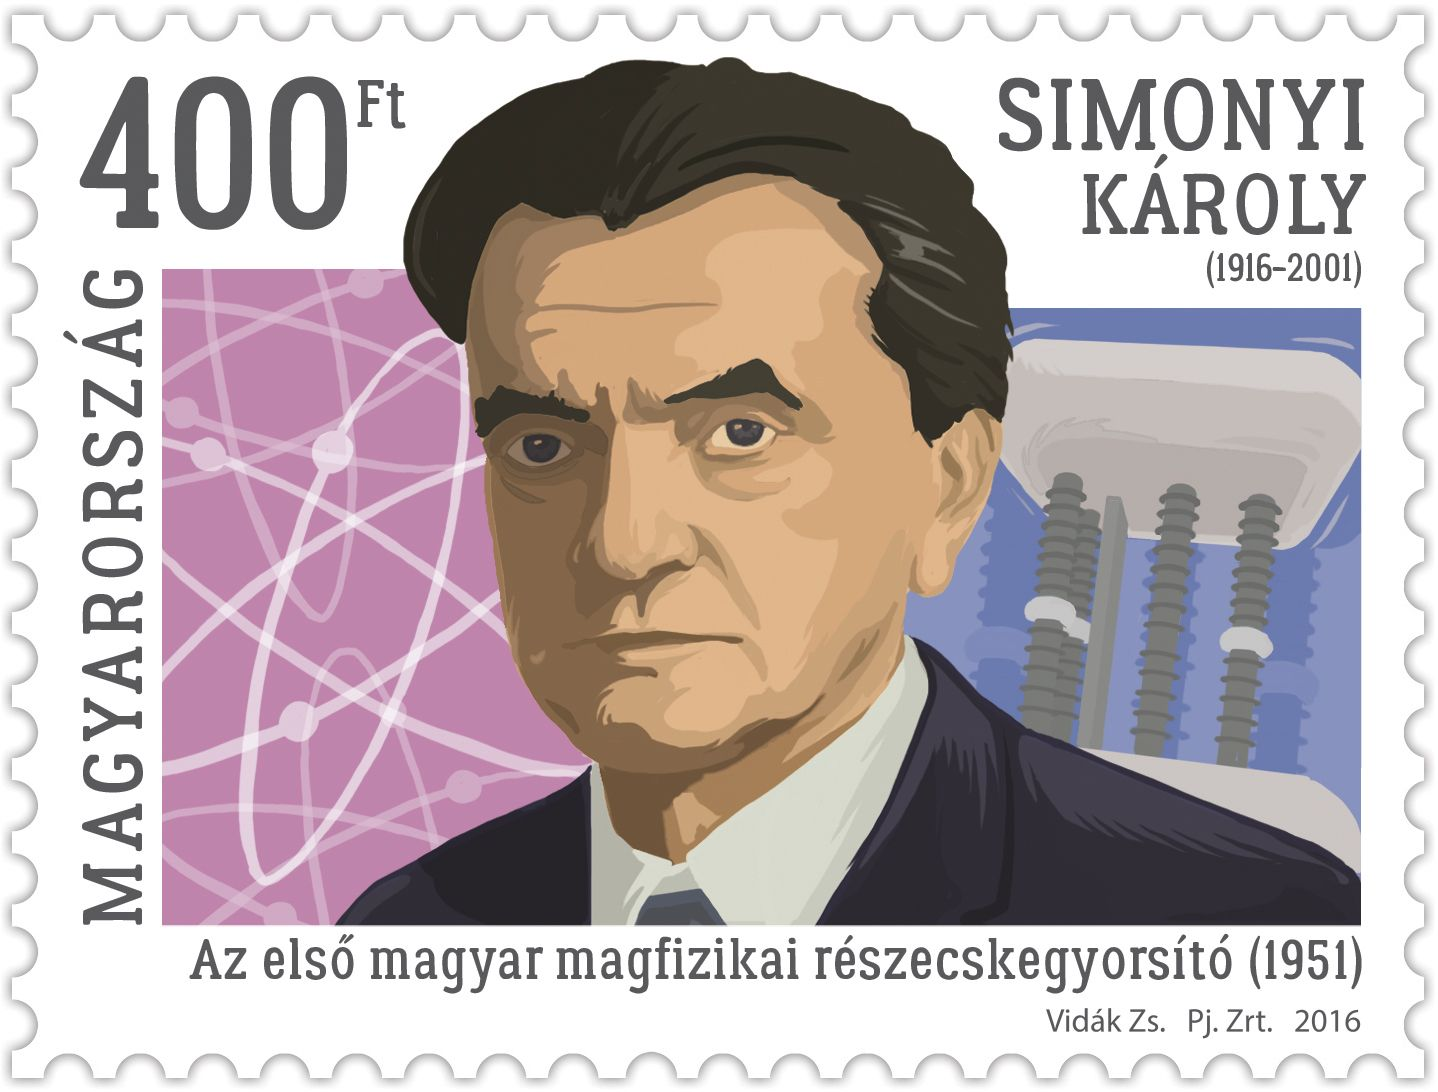 Károly Simonyi was born 100 years ago